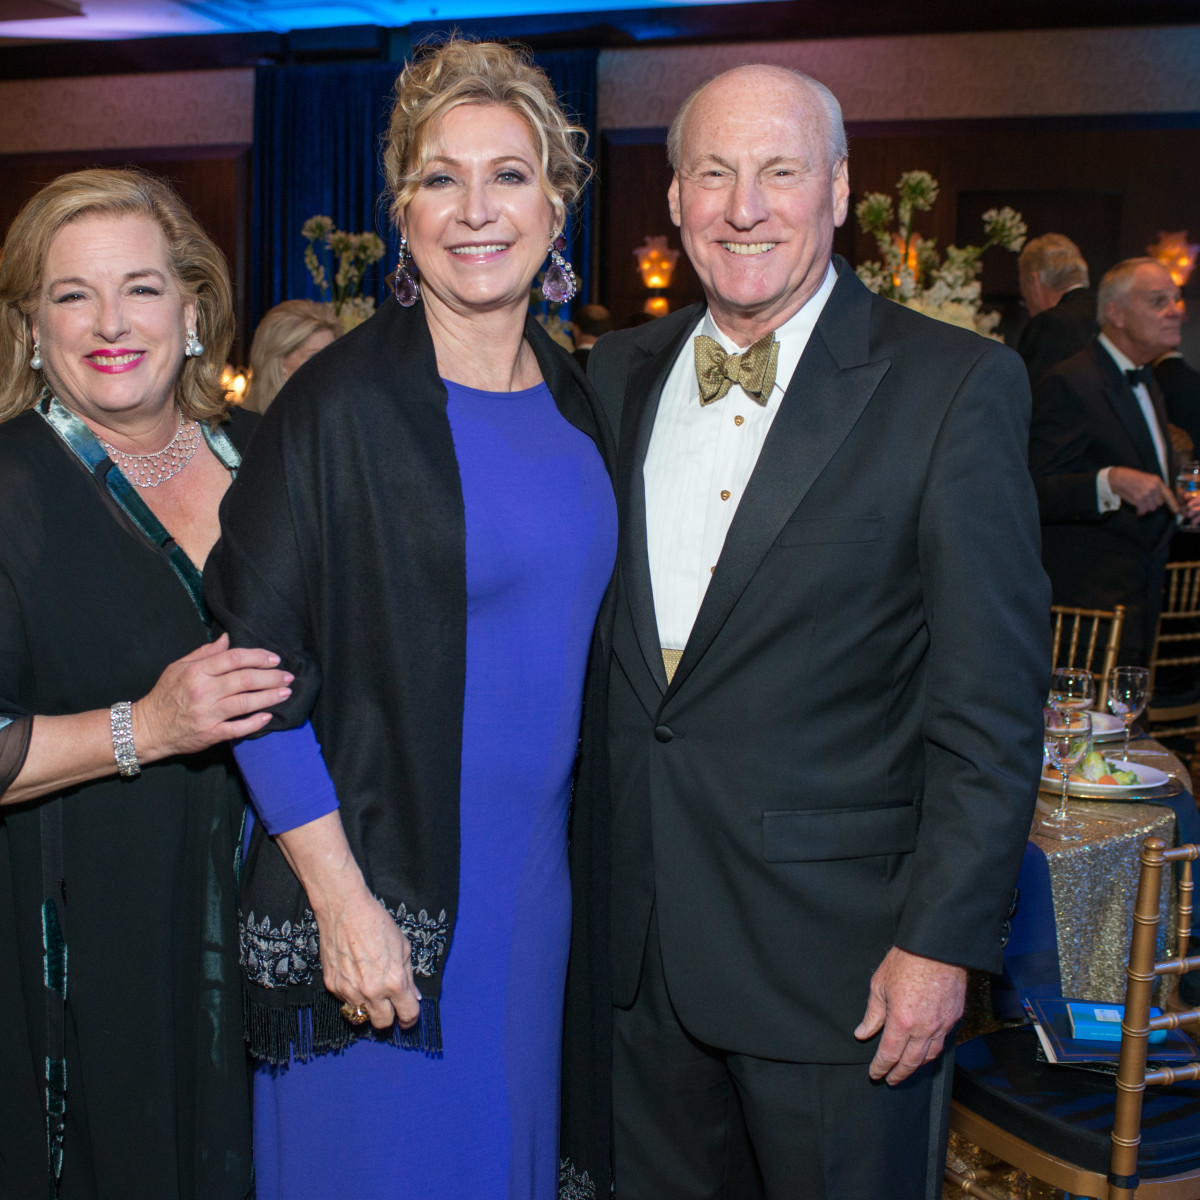 News, Shelby, UNICEF gala, Nov. 2015, Molly Crownover, Carol Linn, Scotty Arnoldy